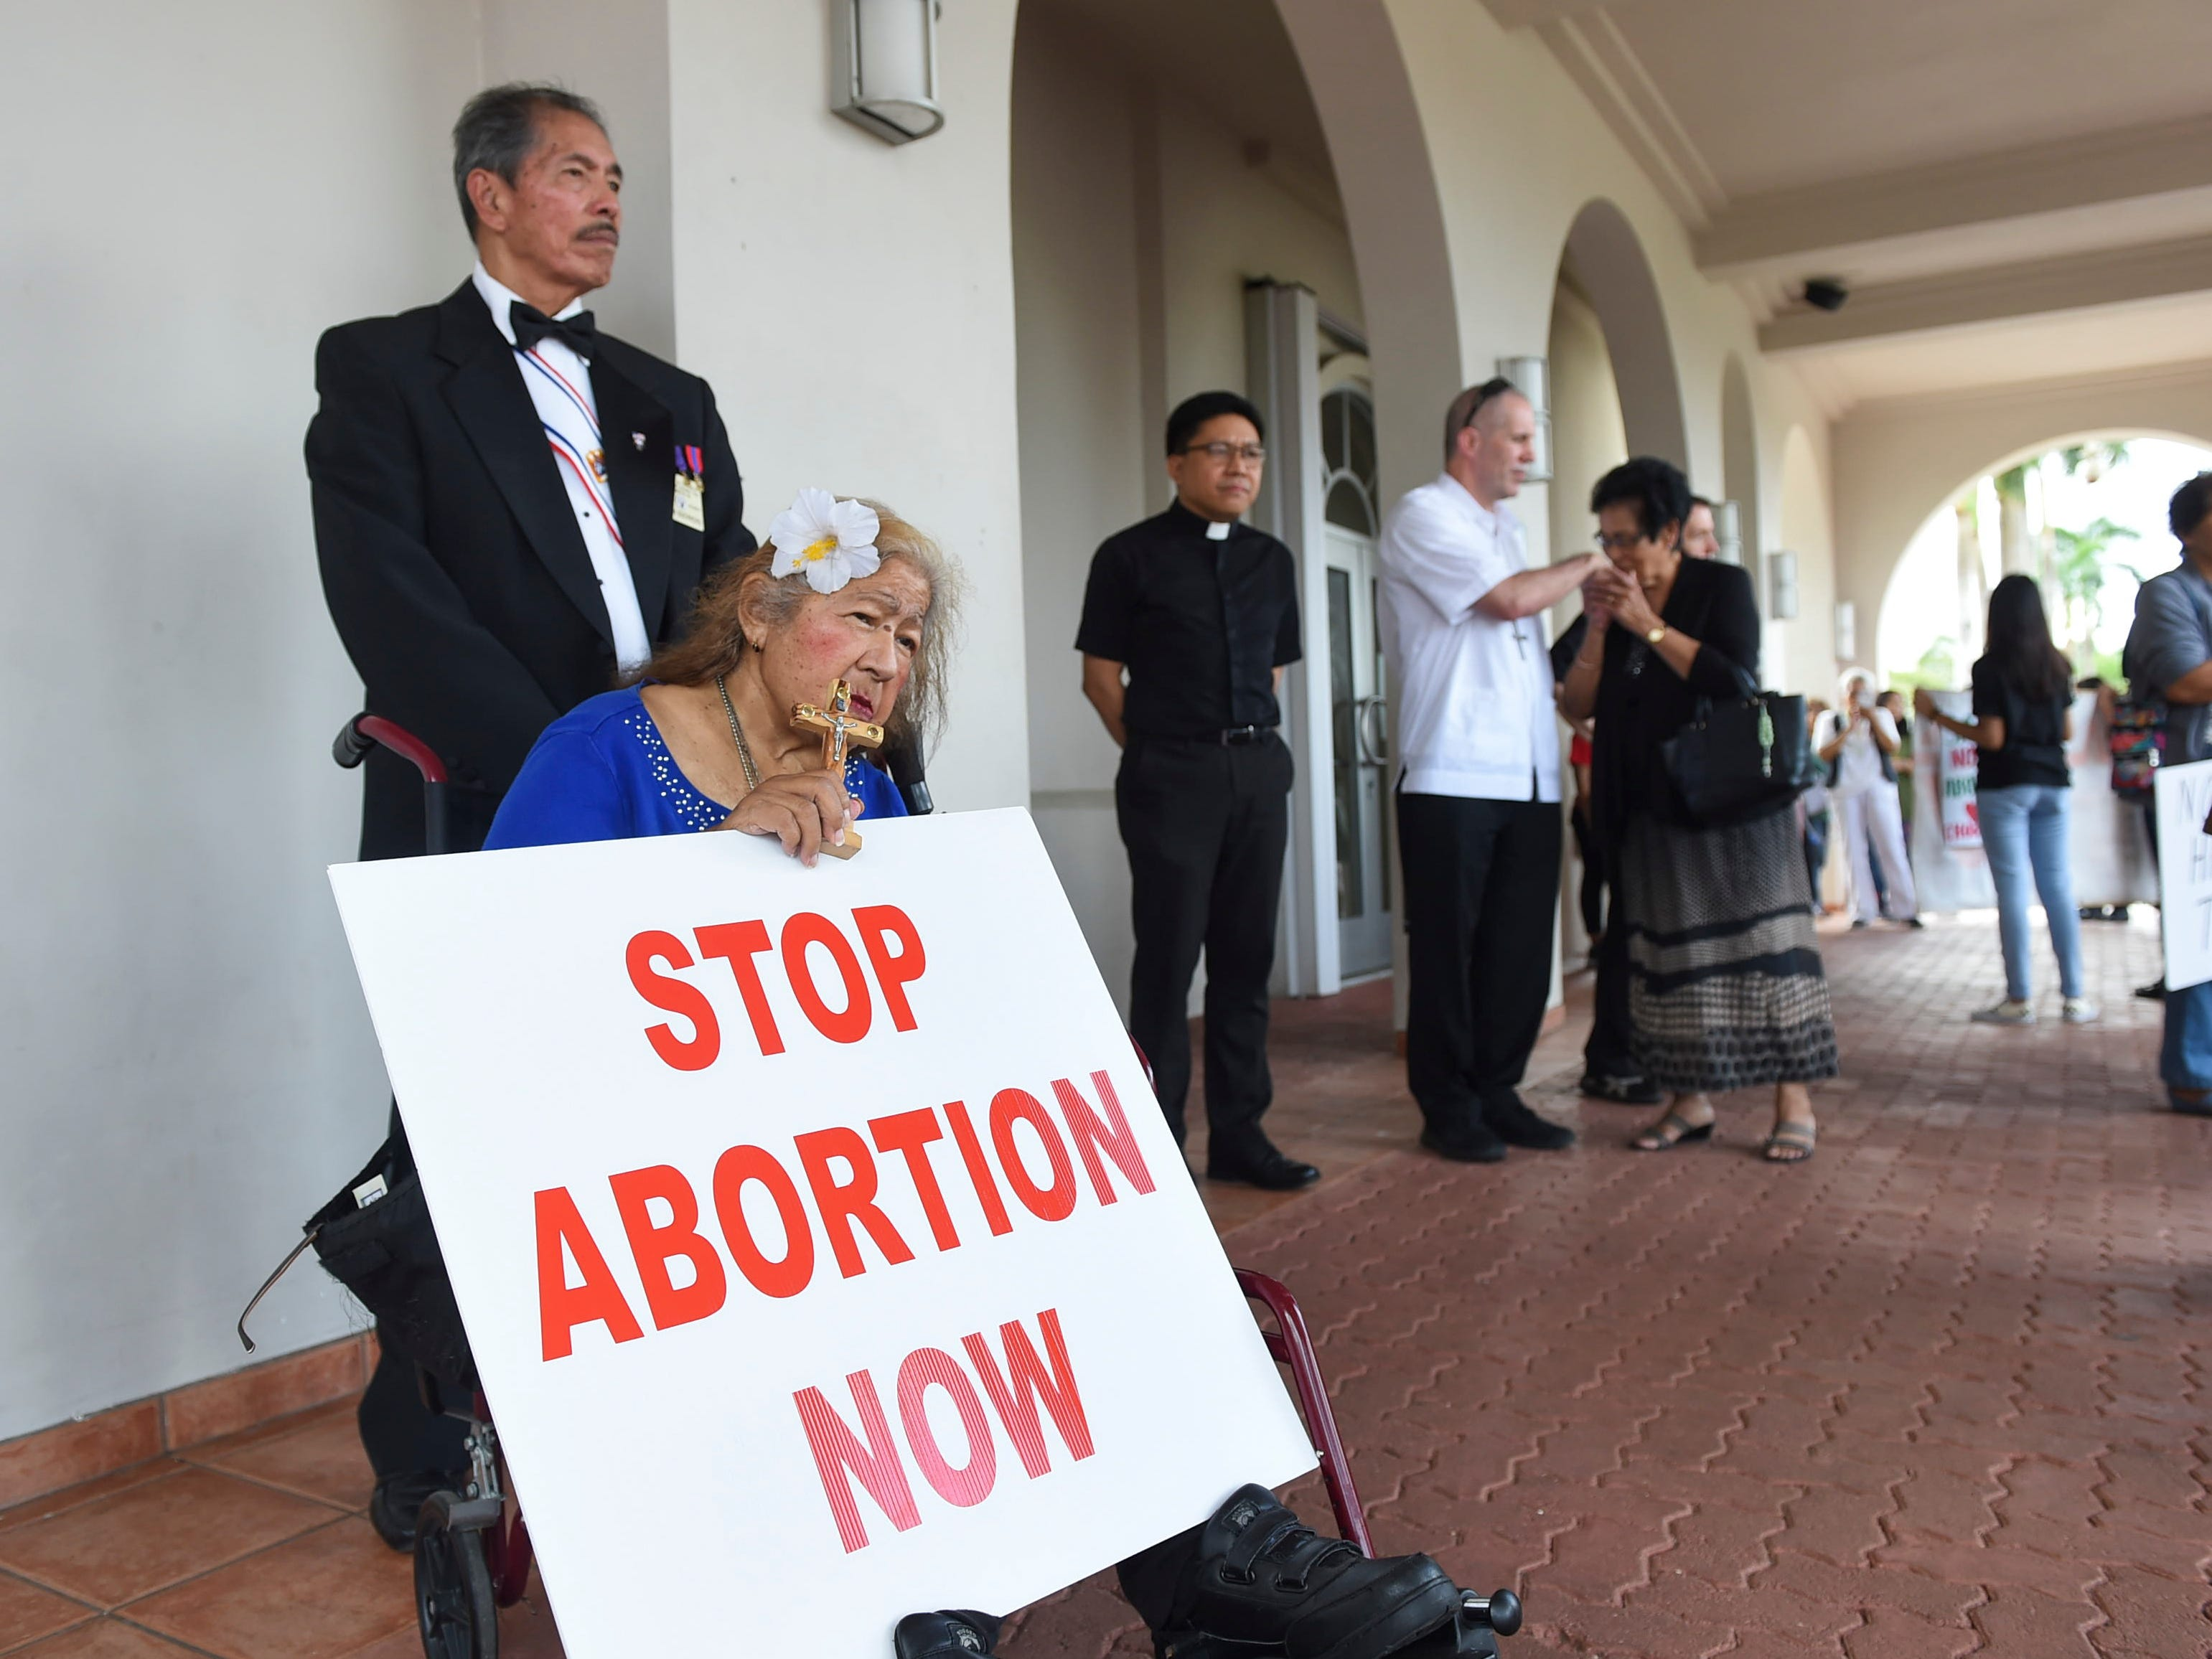 Hundreds of pro-life supporters from various schools and parishes attend the March for Life, an annual anti-abortion event spearheaded by the Guam Catholic Pro-Life Committee, at the Dulce Nombre de Maria Cathedral-Basilica in Hagåtña on Jan. 18, 2019.